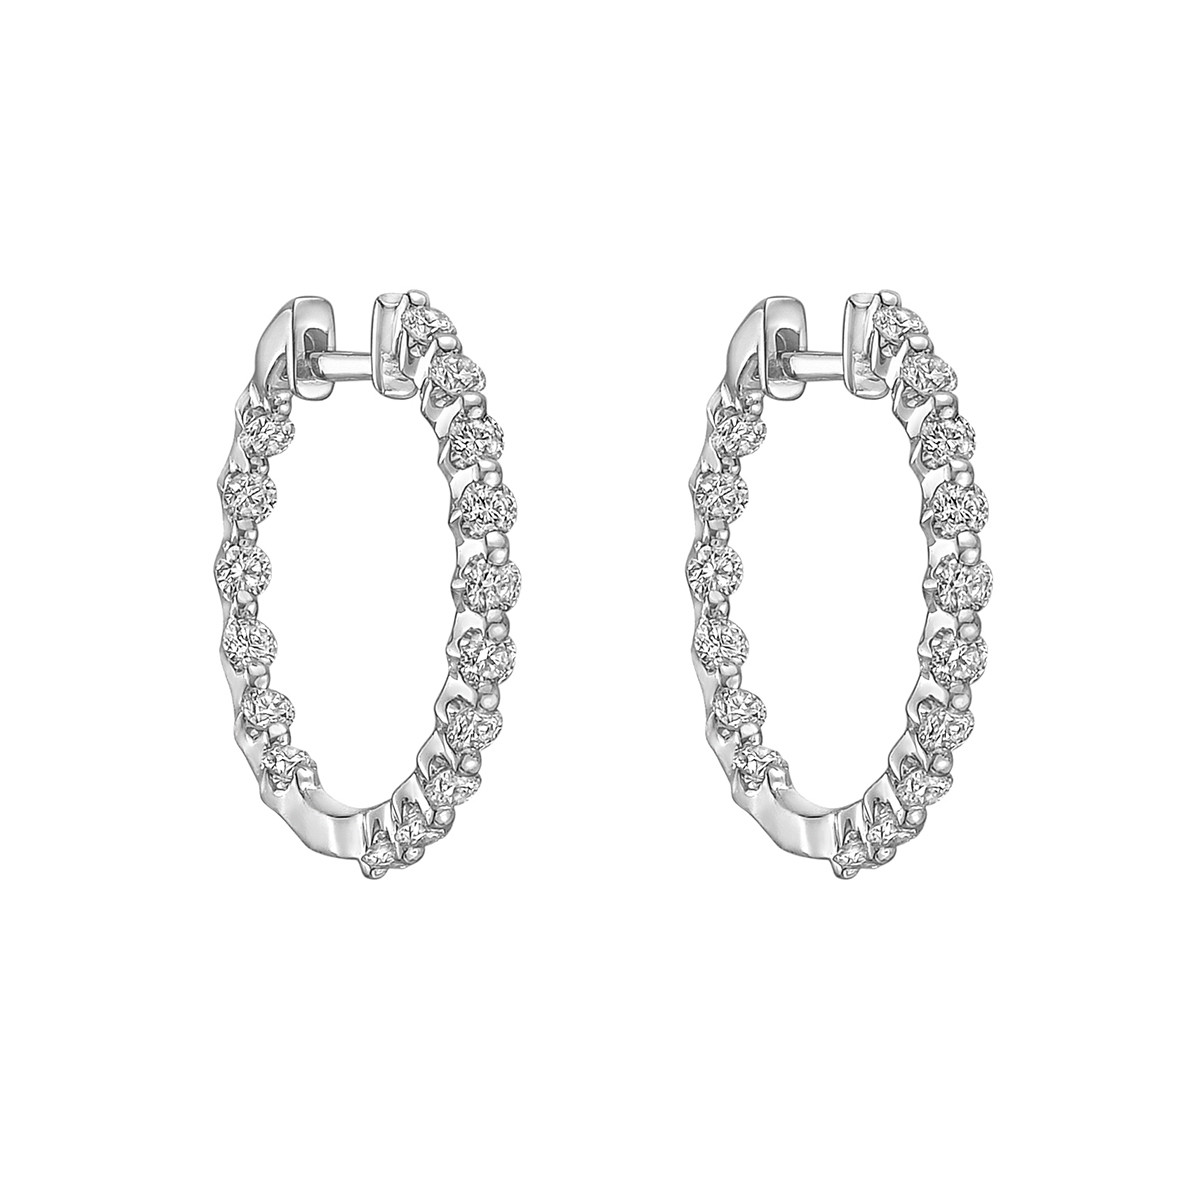 Medium Diamond Hoop Earrings (~1 ct tw)